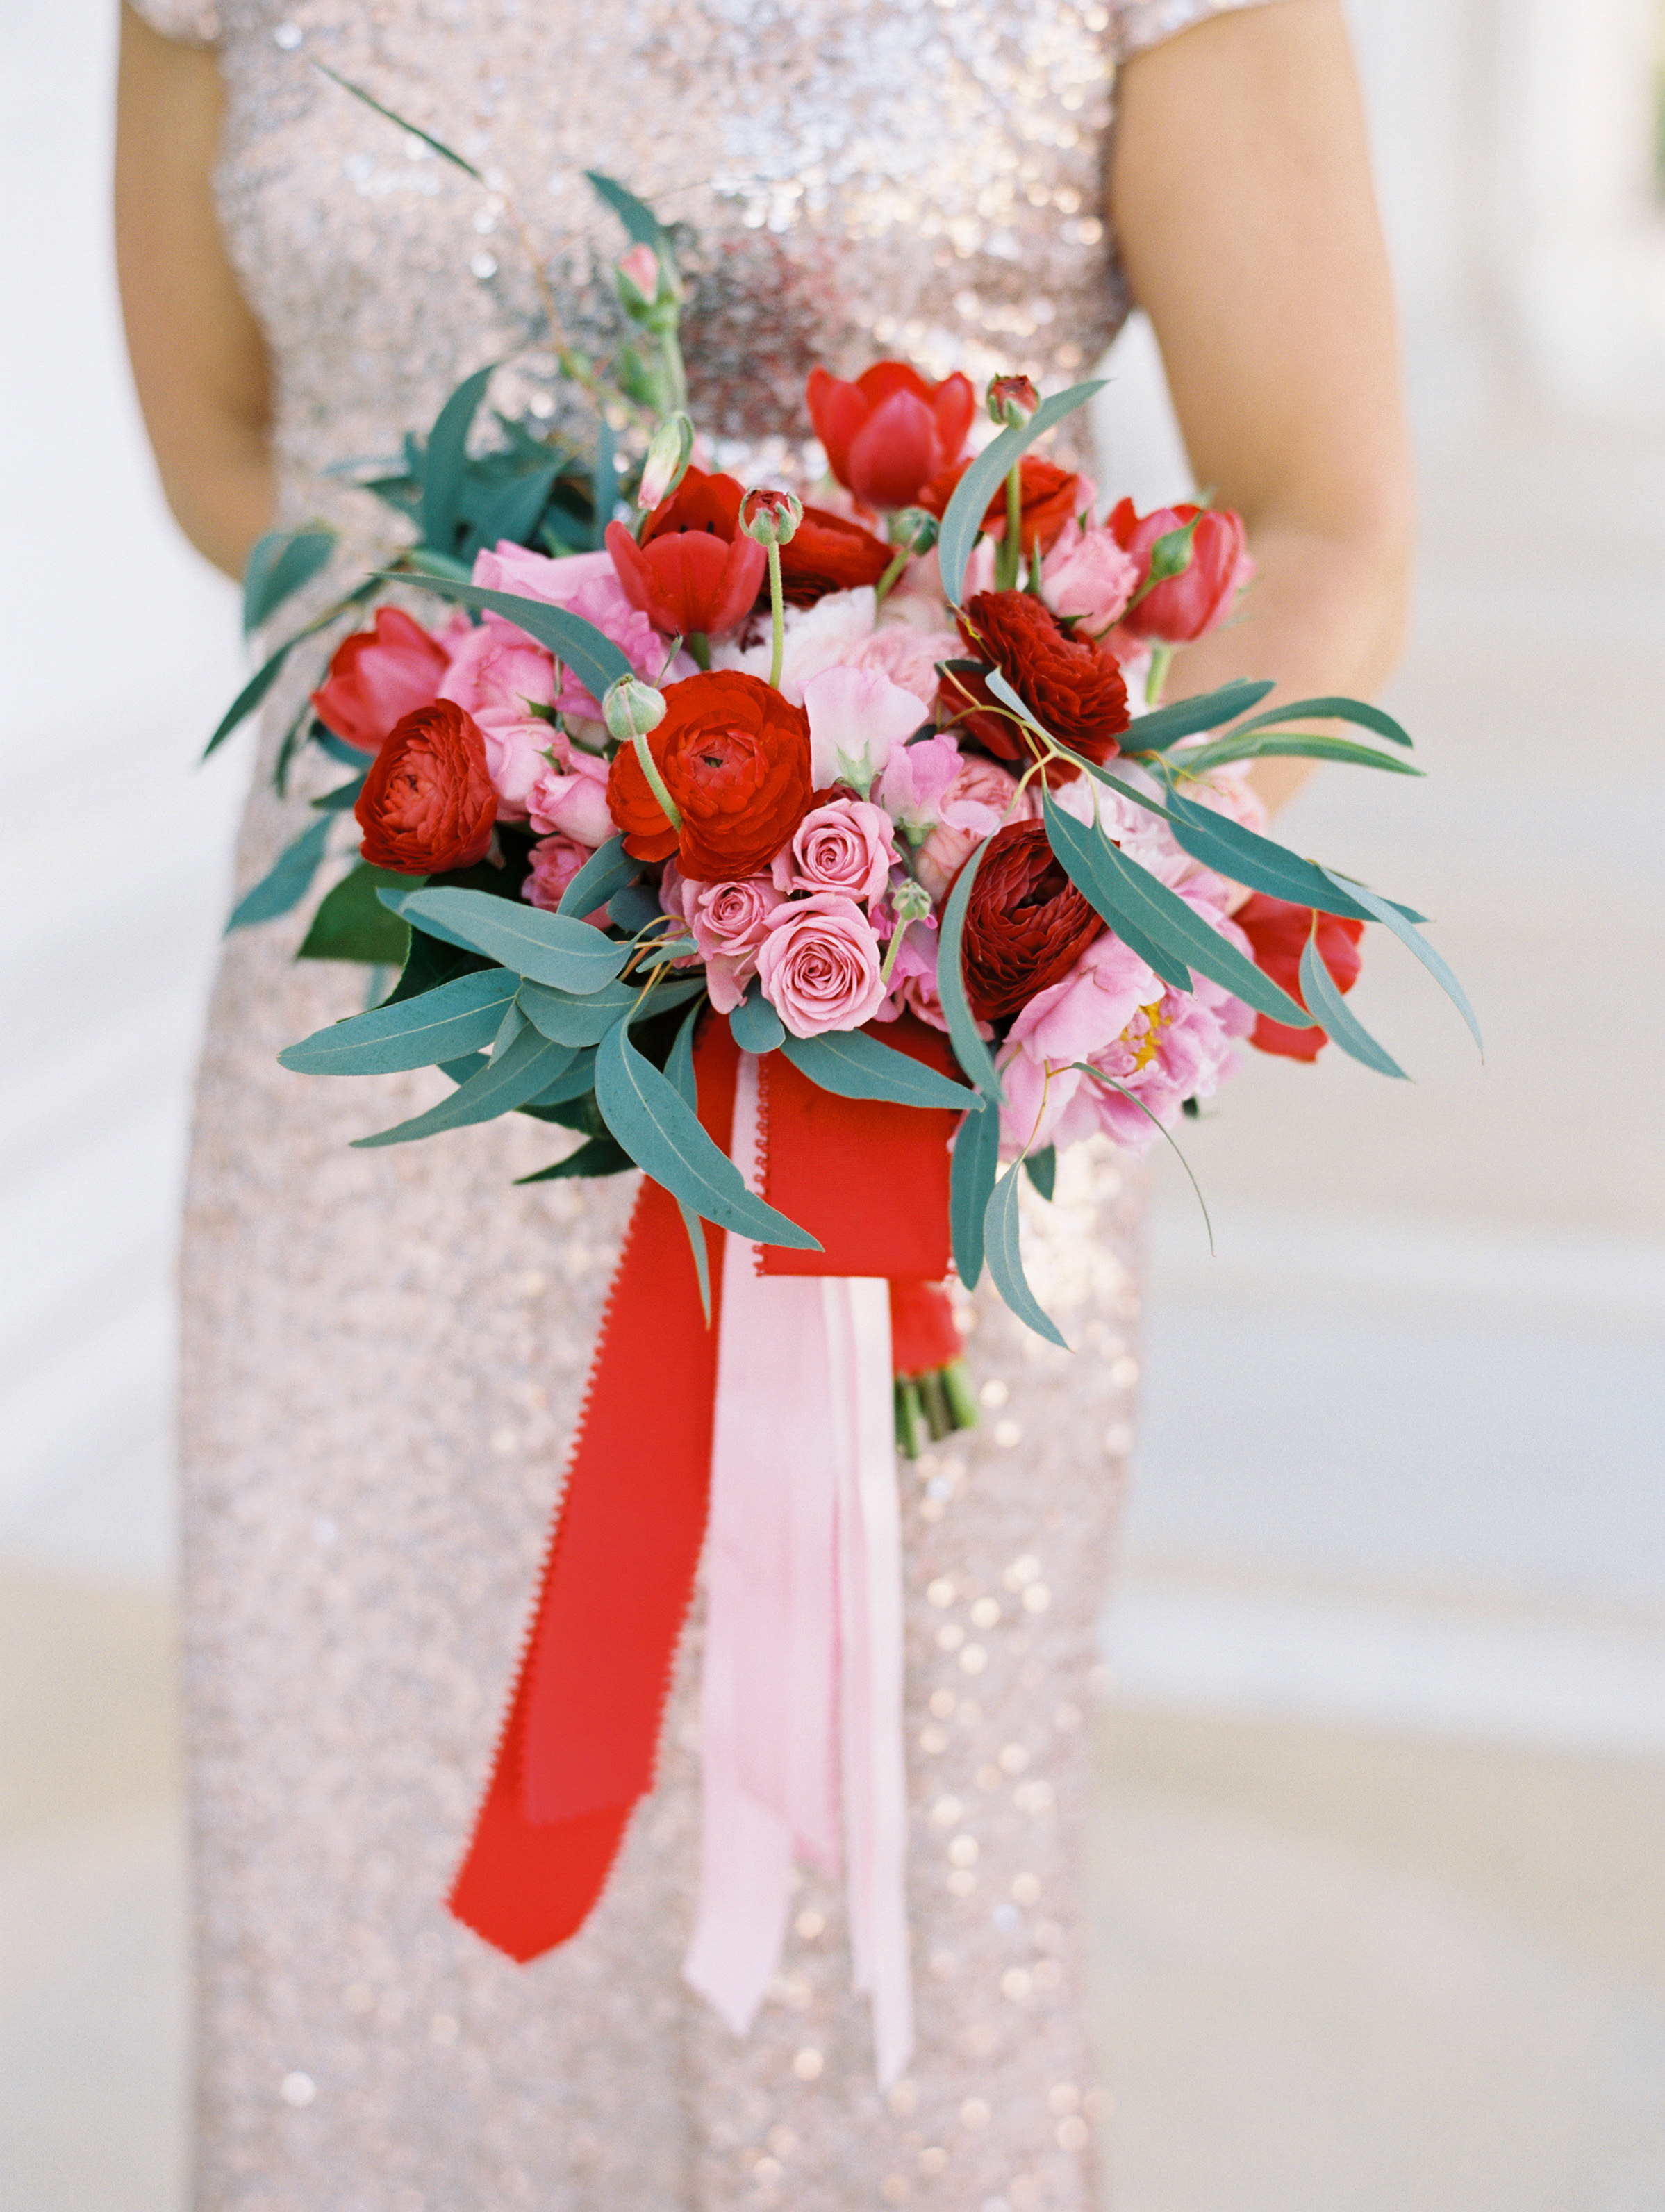 wedding bouquet with red and pink garden roses and tulips